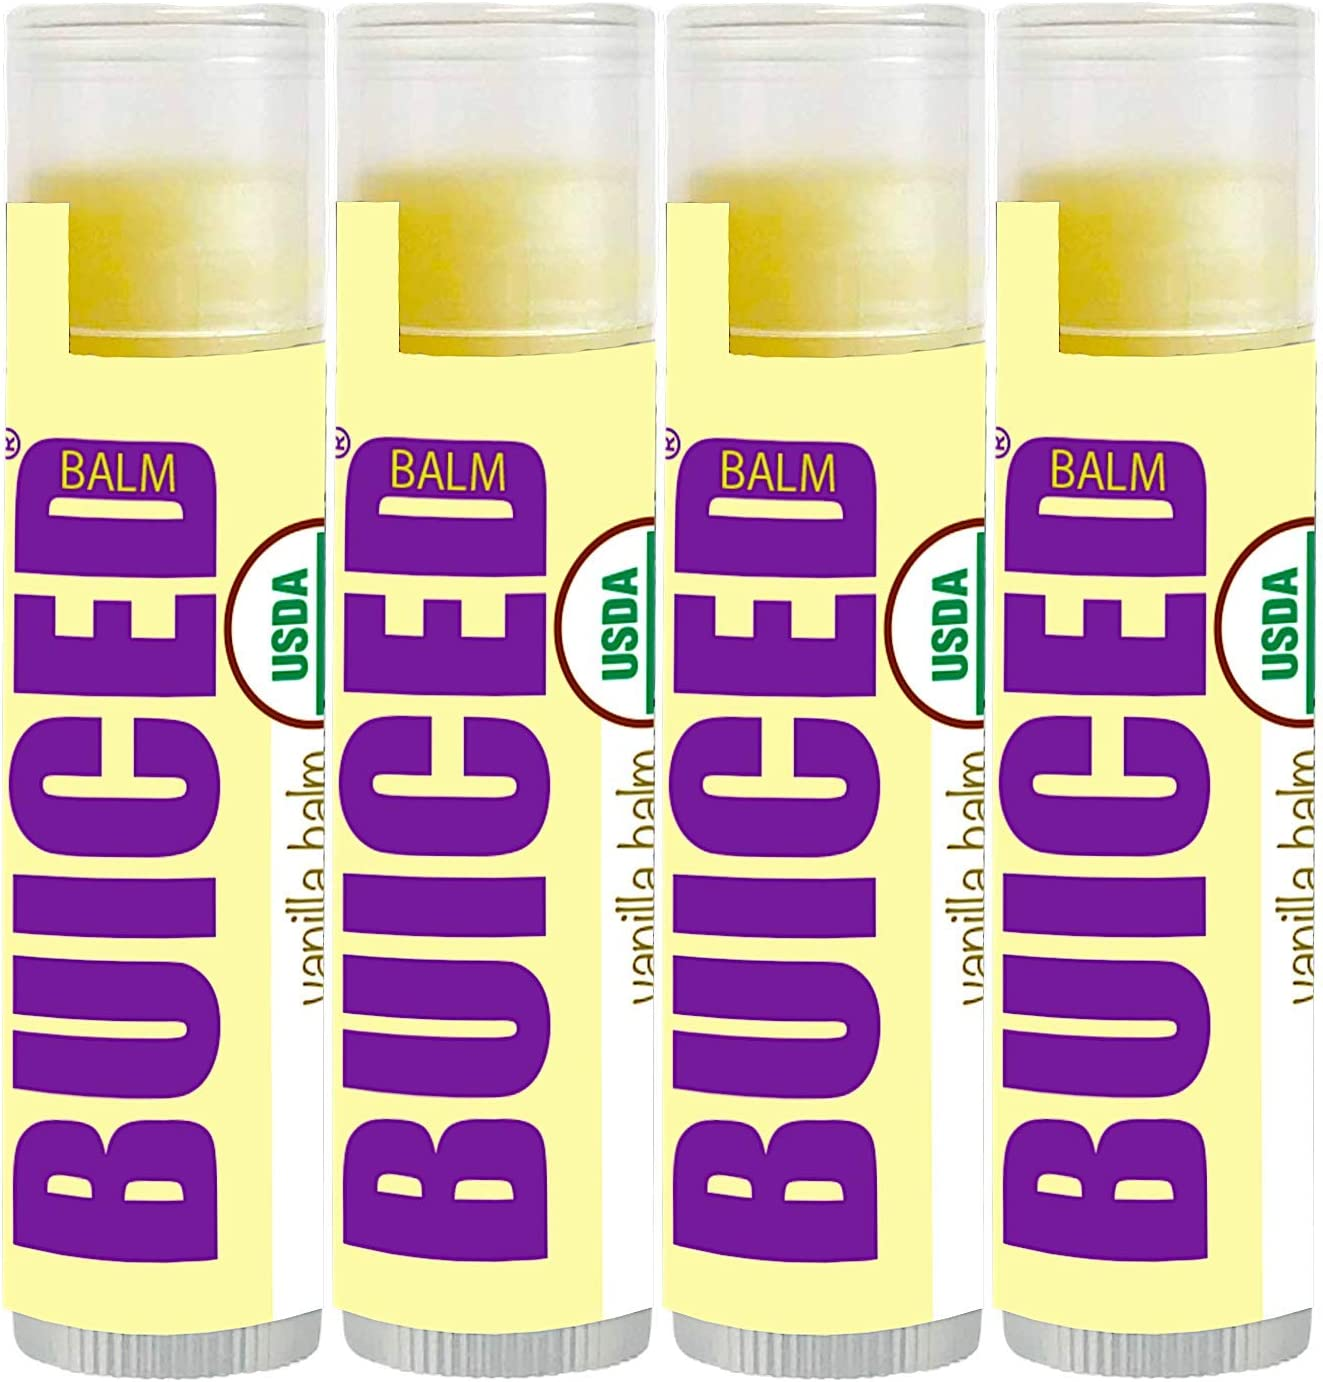 BUICED Vitamins USDA Organic Lip Balm | USDA Certified Organic | Beeswax | Coconut Oil | Vitamin E | Best Lip Chapstick for Dry Lips | Adults and Kids Lip Repair | Made in USA | Vanilla Flavor